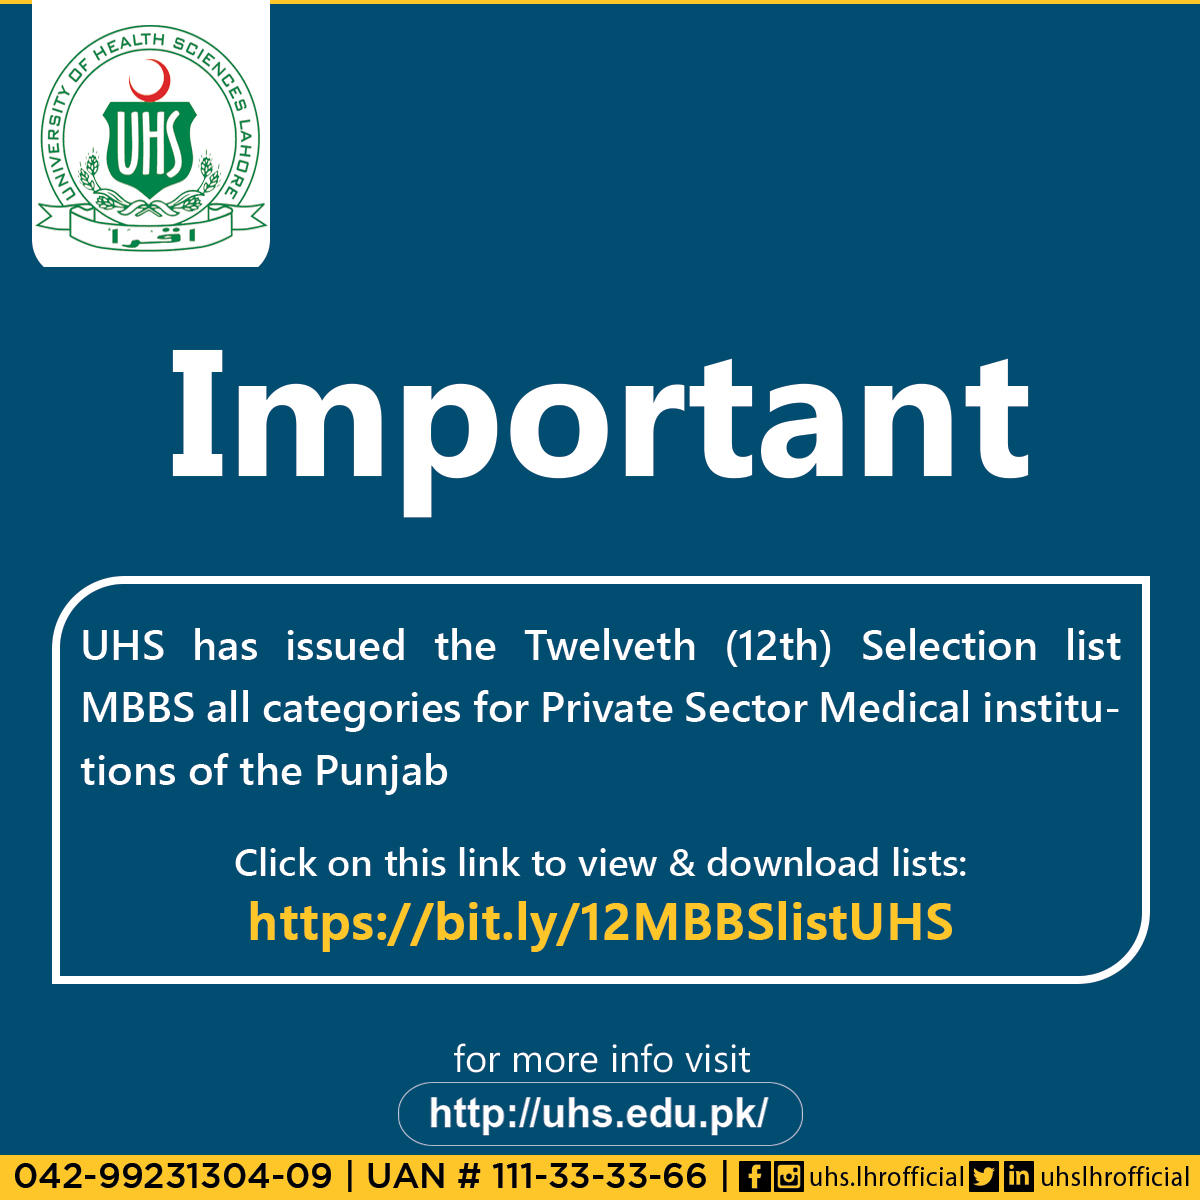 UHS has issued the Twelveth (12th) Selection list MBBS all categories for Private Sector Medical institutions of the Punjab. Click on this link to view & download lists: bit.ly/12MBBSlistUHS